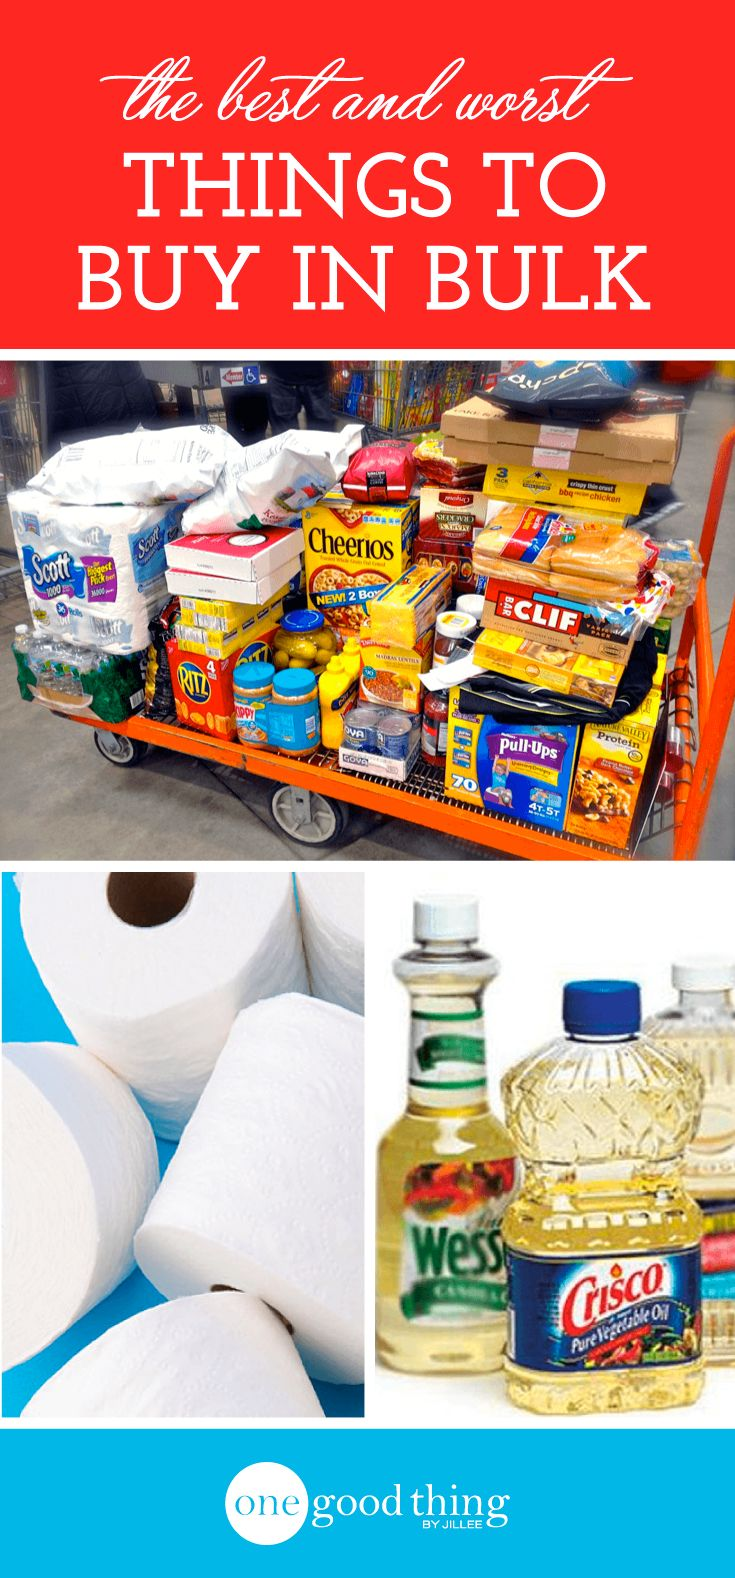 Is buying in bulk the best saving option? Not always. It depends on what you're buying. Check out this list of what you SHOULD and SHOULDN'T buy in bulk.